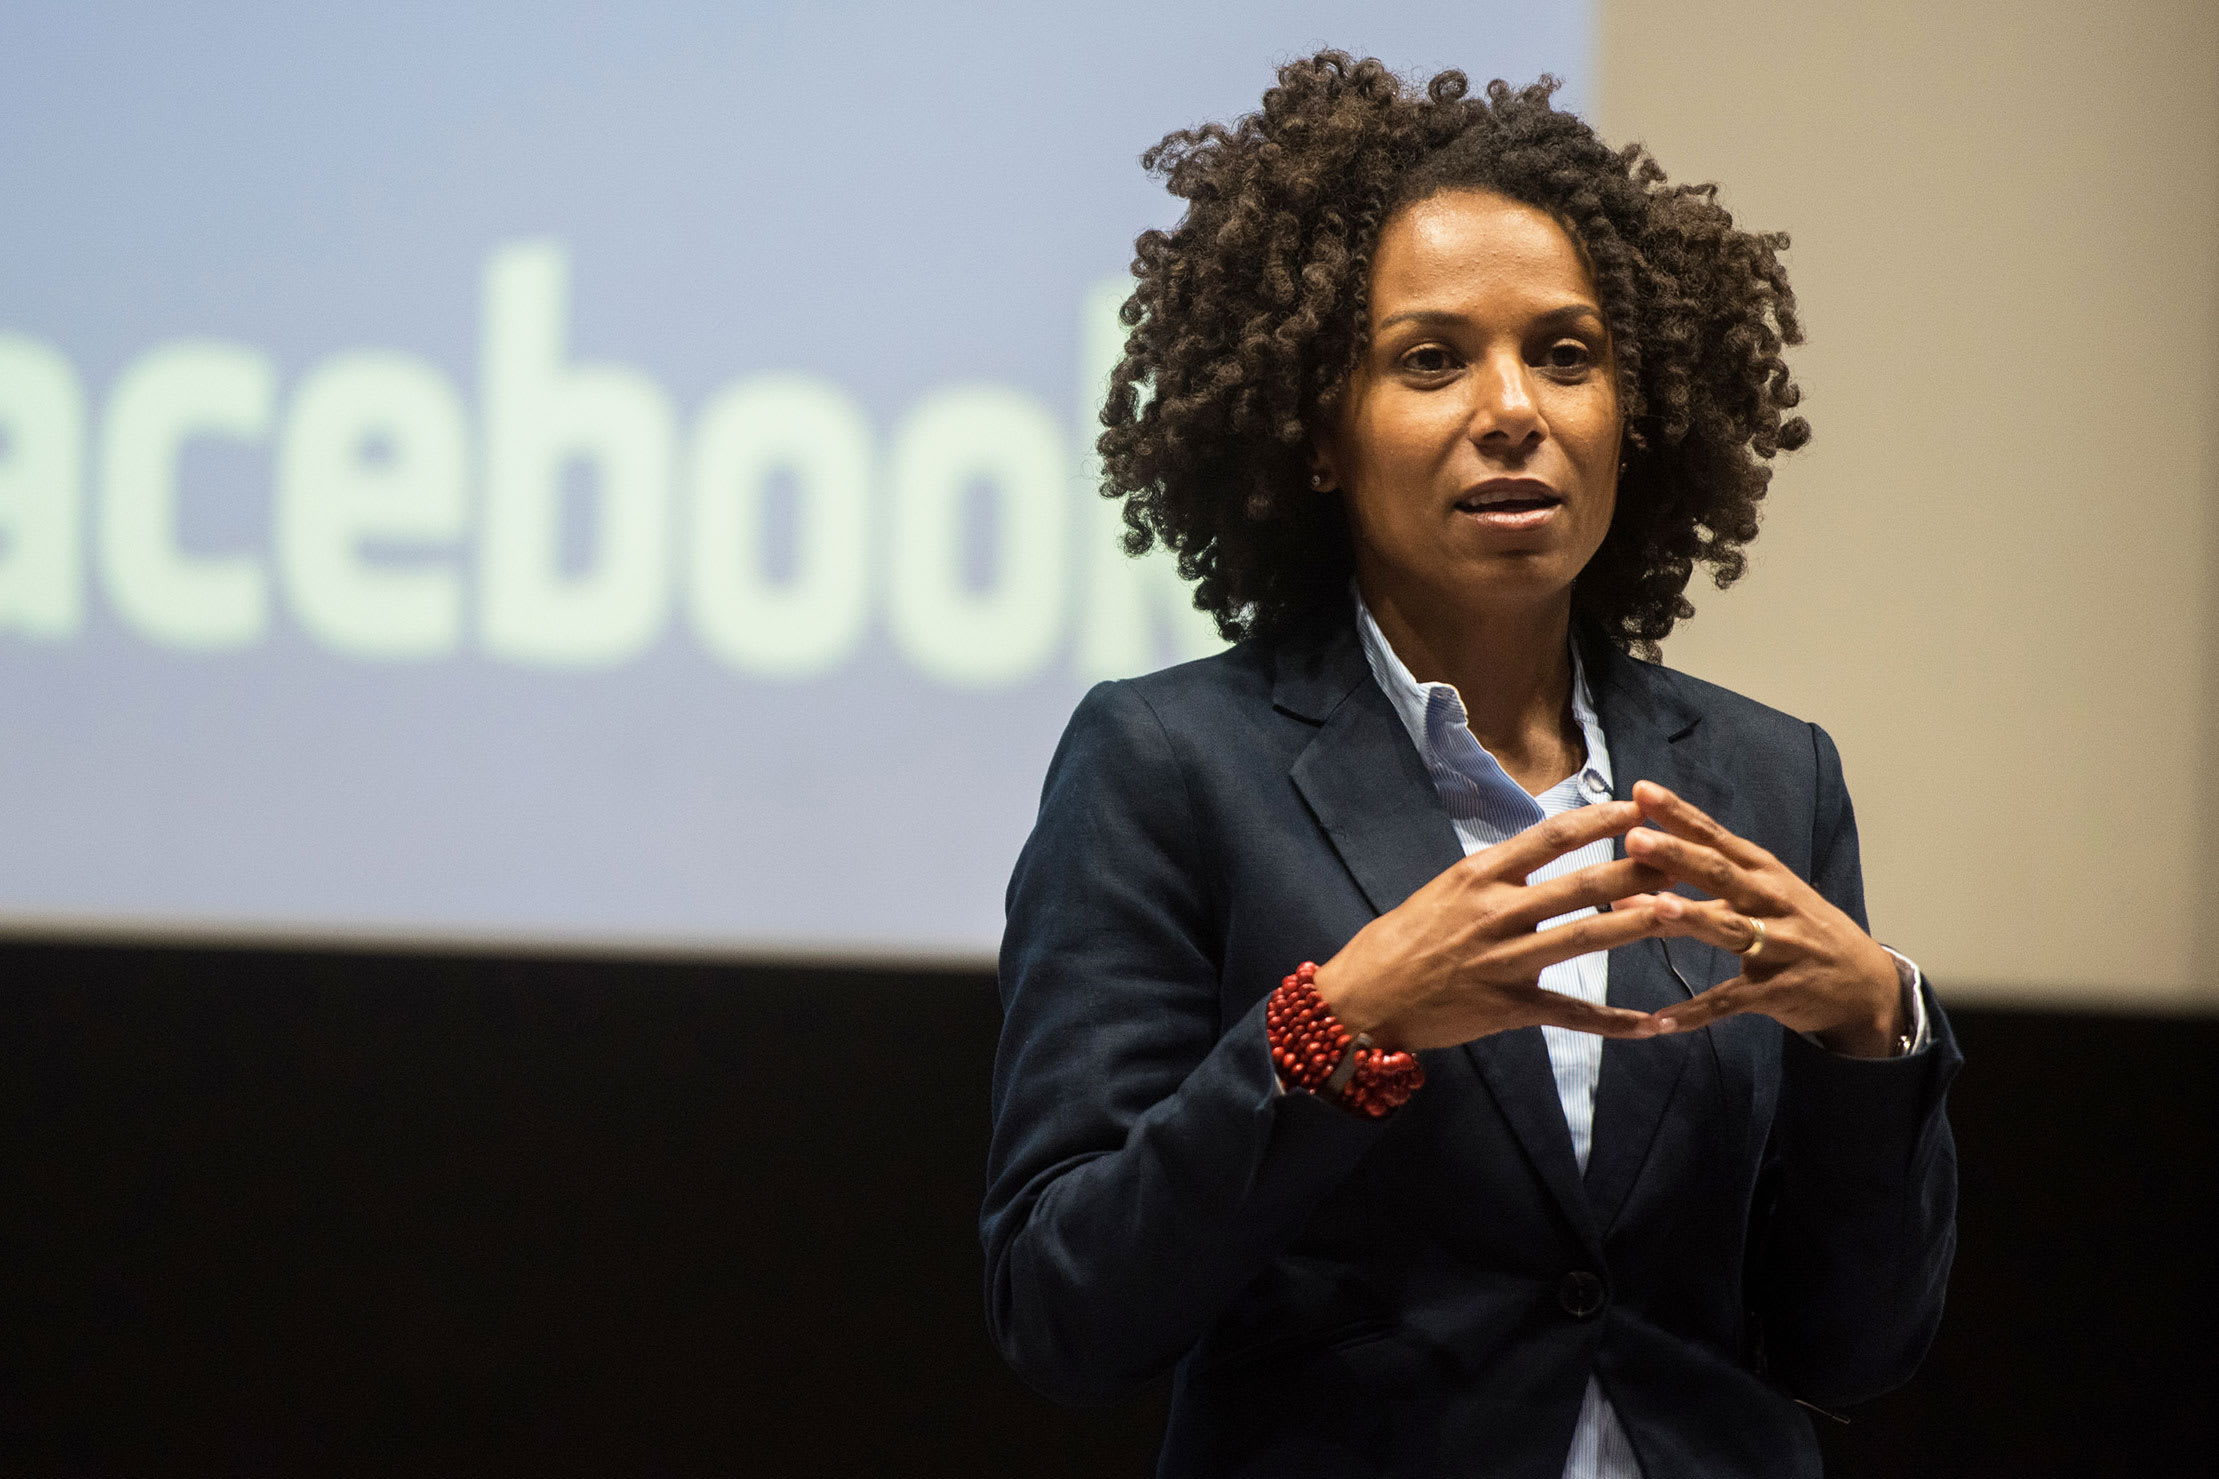 Facebook will evaluate execs on diversity, inclusion: Maxine Williams